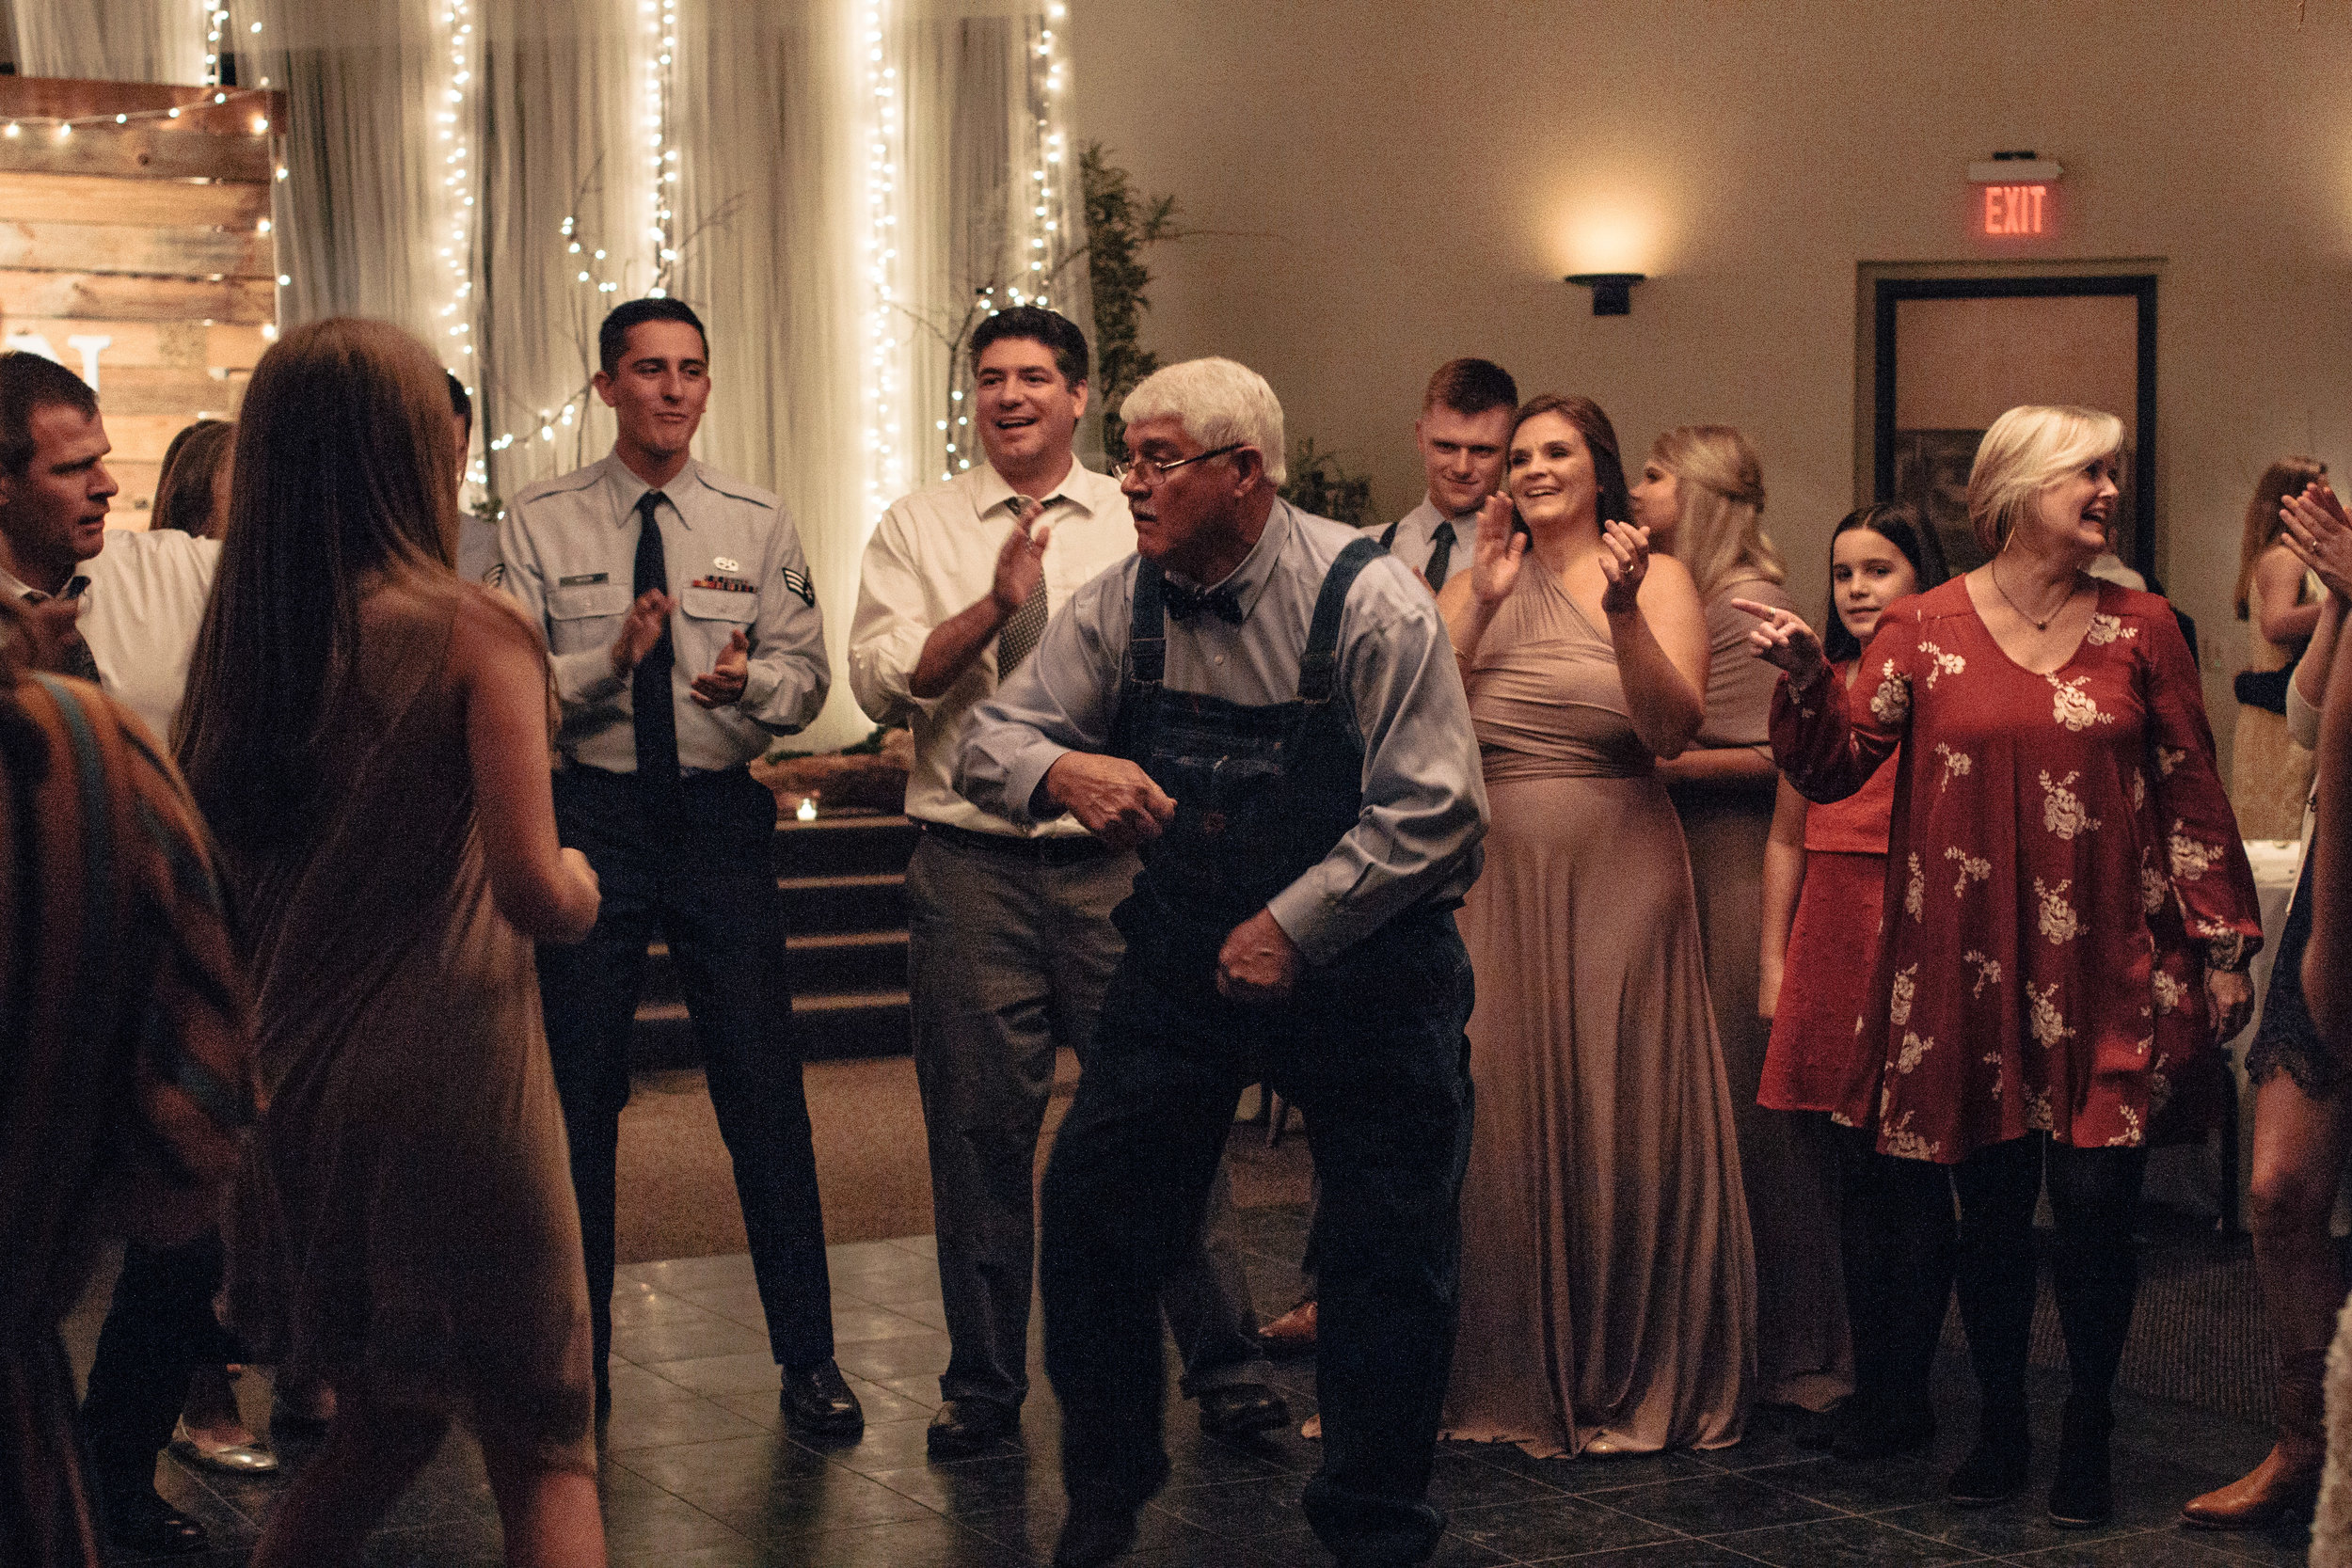 Grandpa reigned supreme during his time on the dance floor. The mother of the bride said she had never in twenty-three years seen him dance.